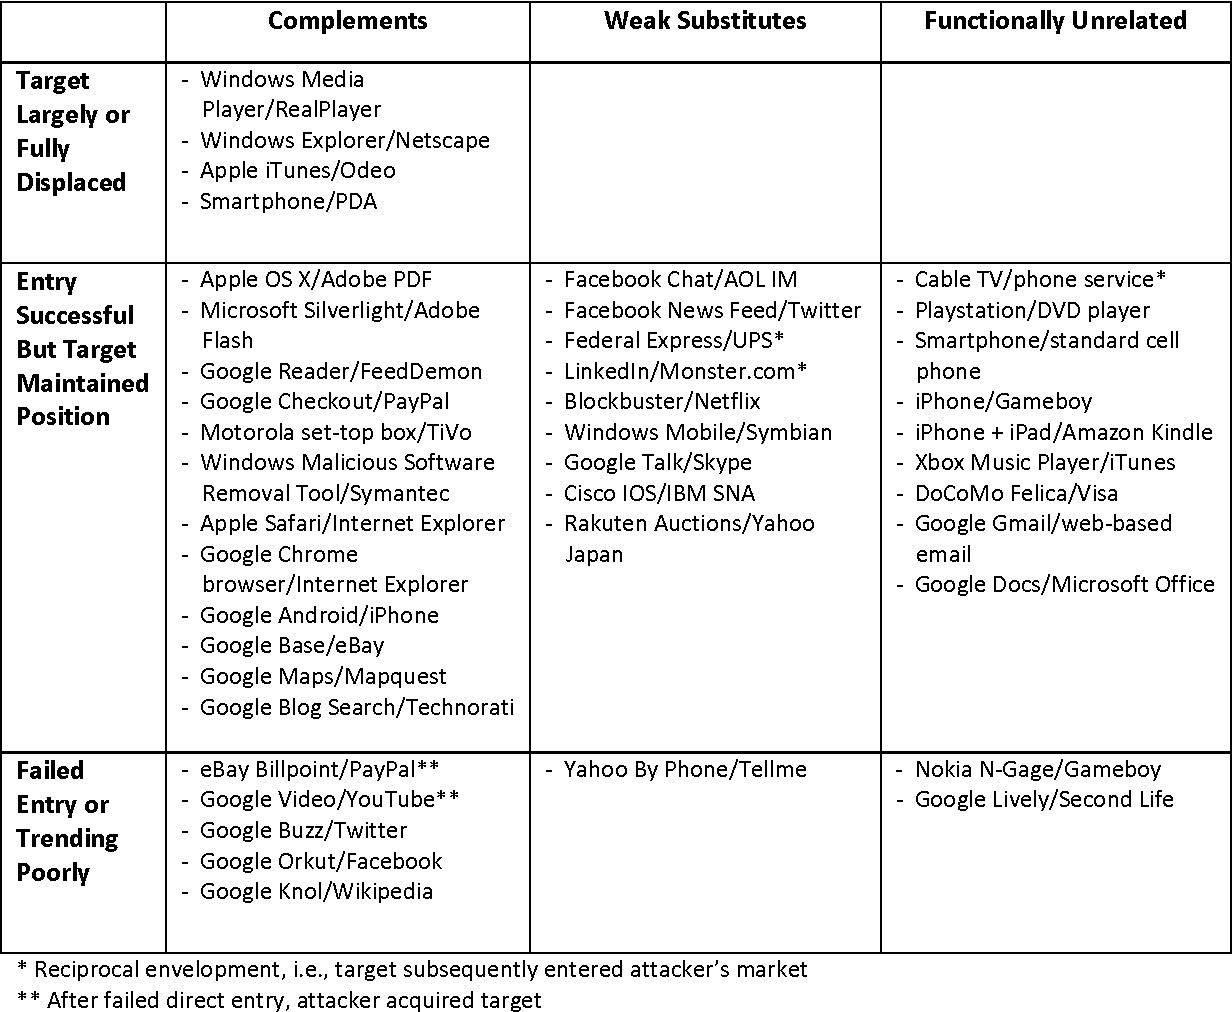 Table 1 from Platform Envelopment - Semantic Scholar